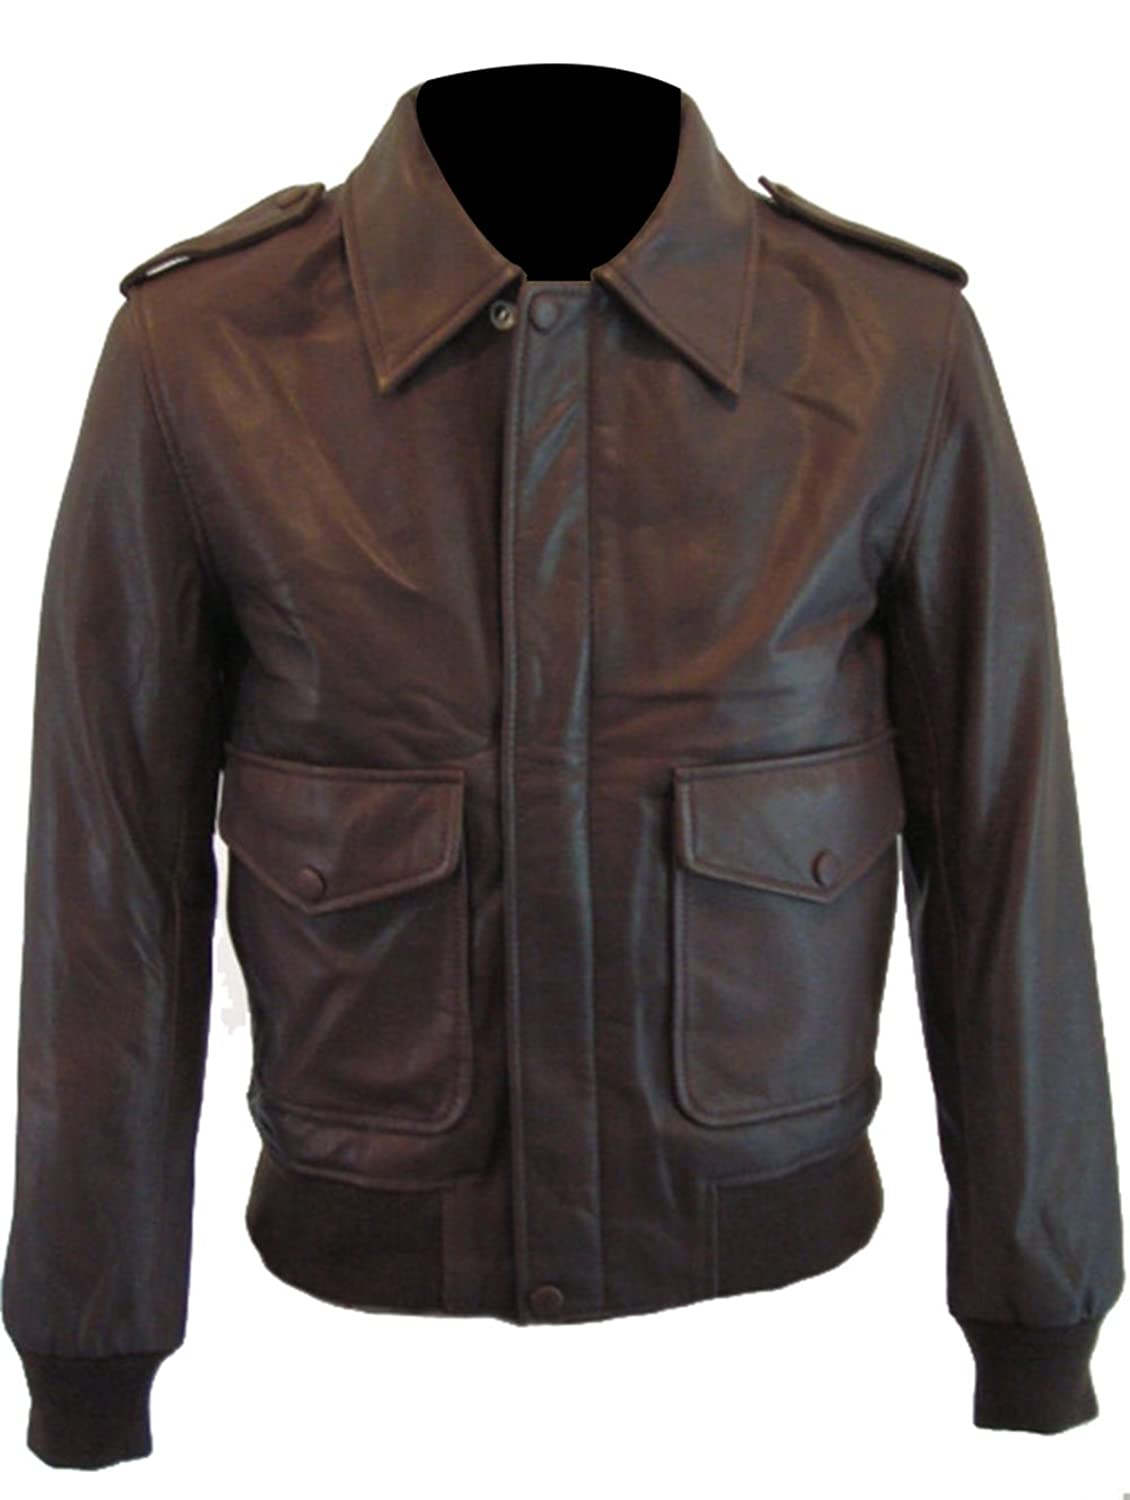 1930 Classic Slim Fit Brown Leather Jacket